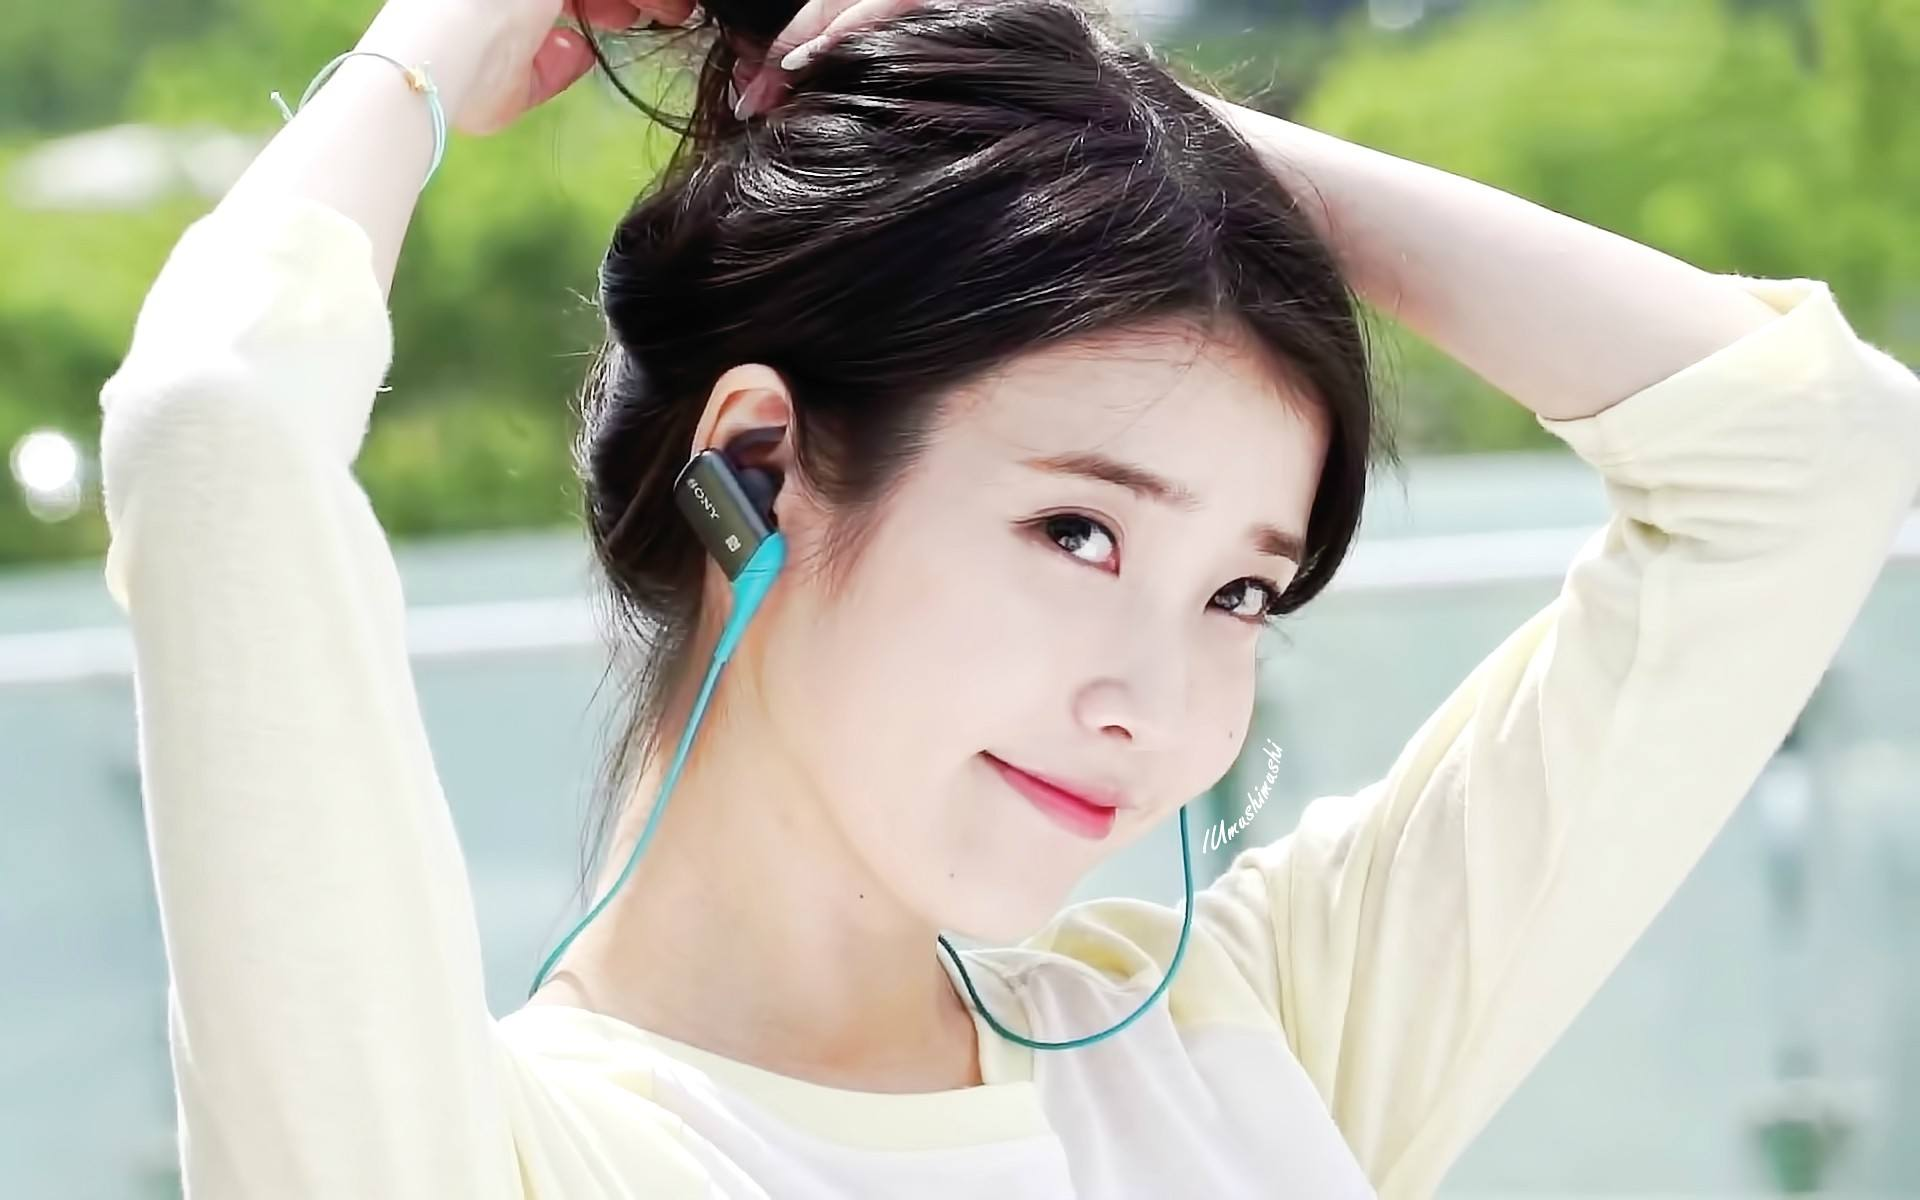 IU's new teaser photo looks just like how she posed as a baby